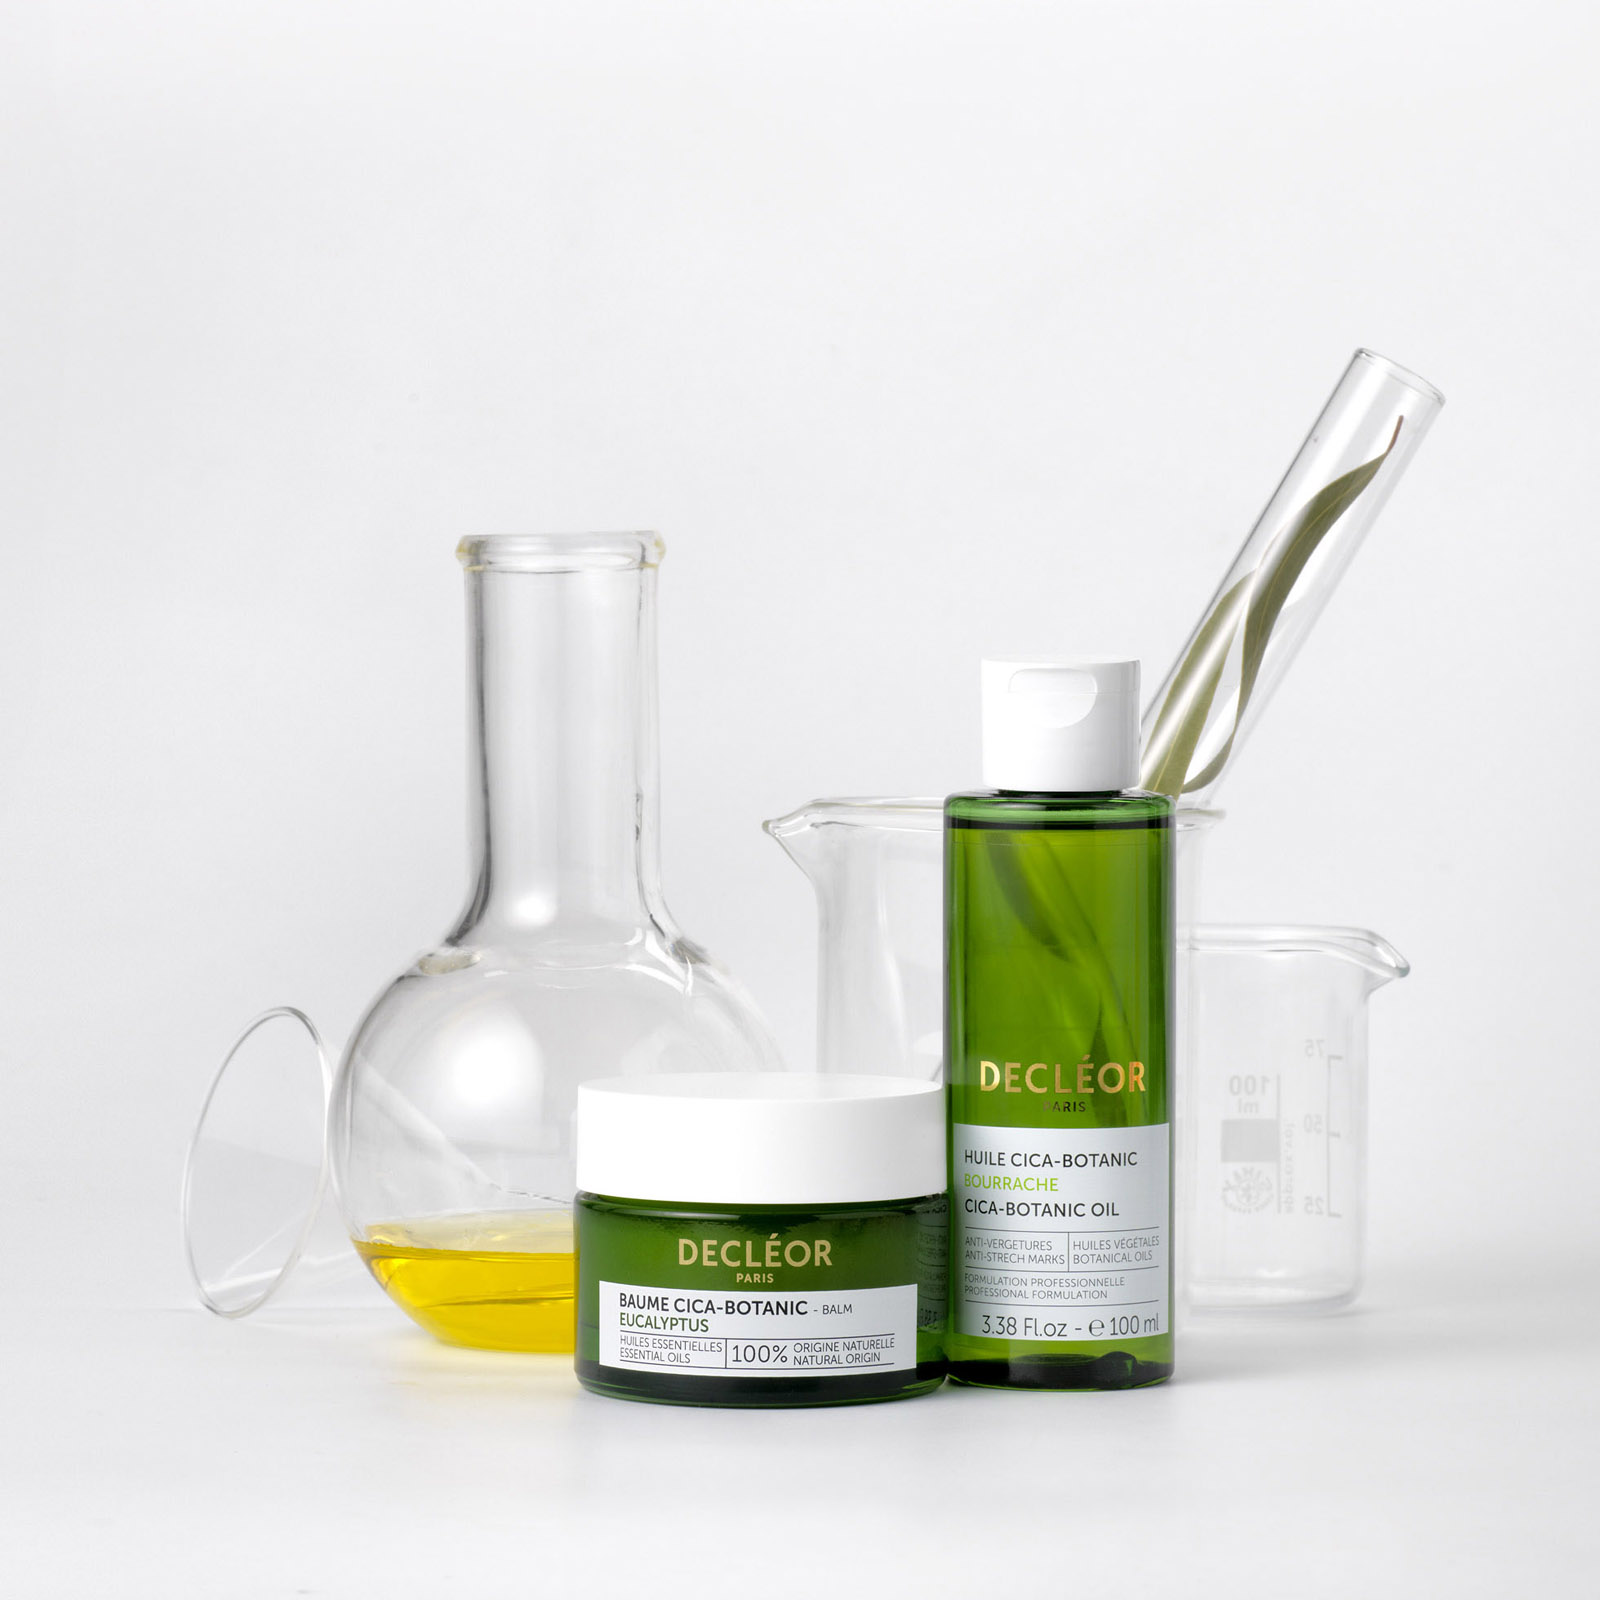 Decleor products image 3